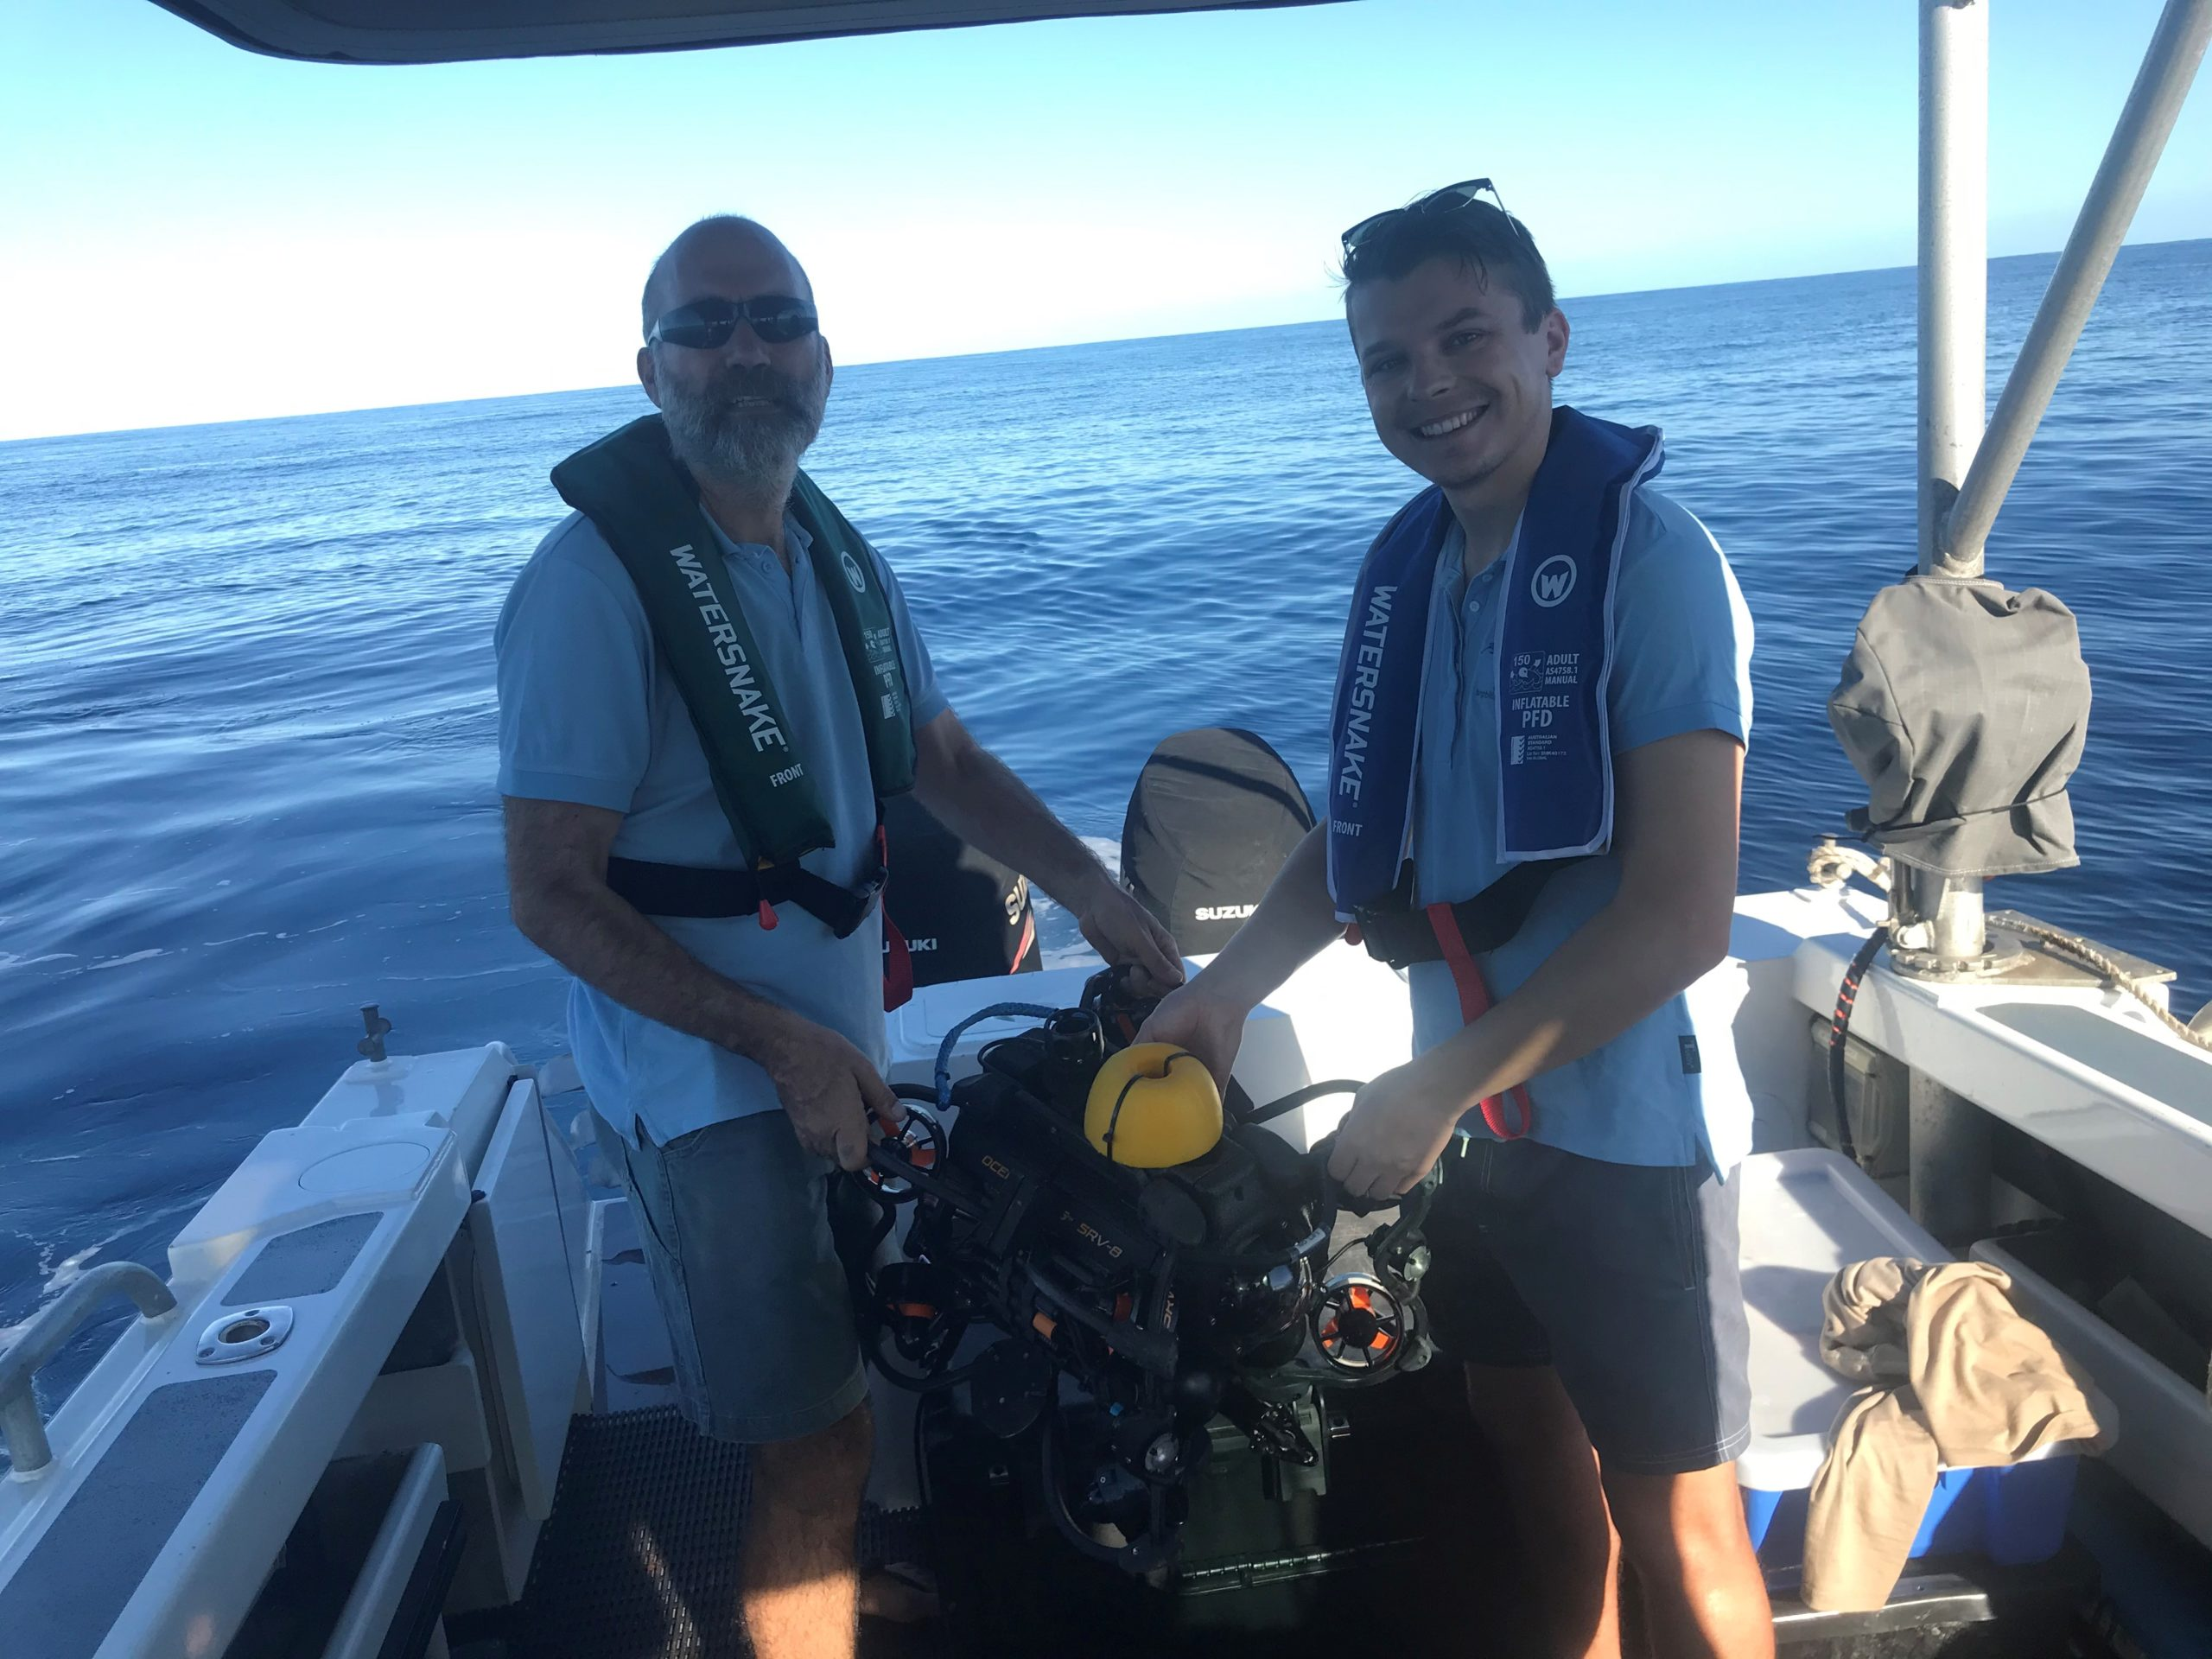 Meet Logan Hellmrich (right), pictured here with CSIRO Research Officer Nick Mortimer! Logan is a PhD student who is looking to understand more about Ningaloo's deepwater habitats.